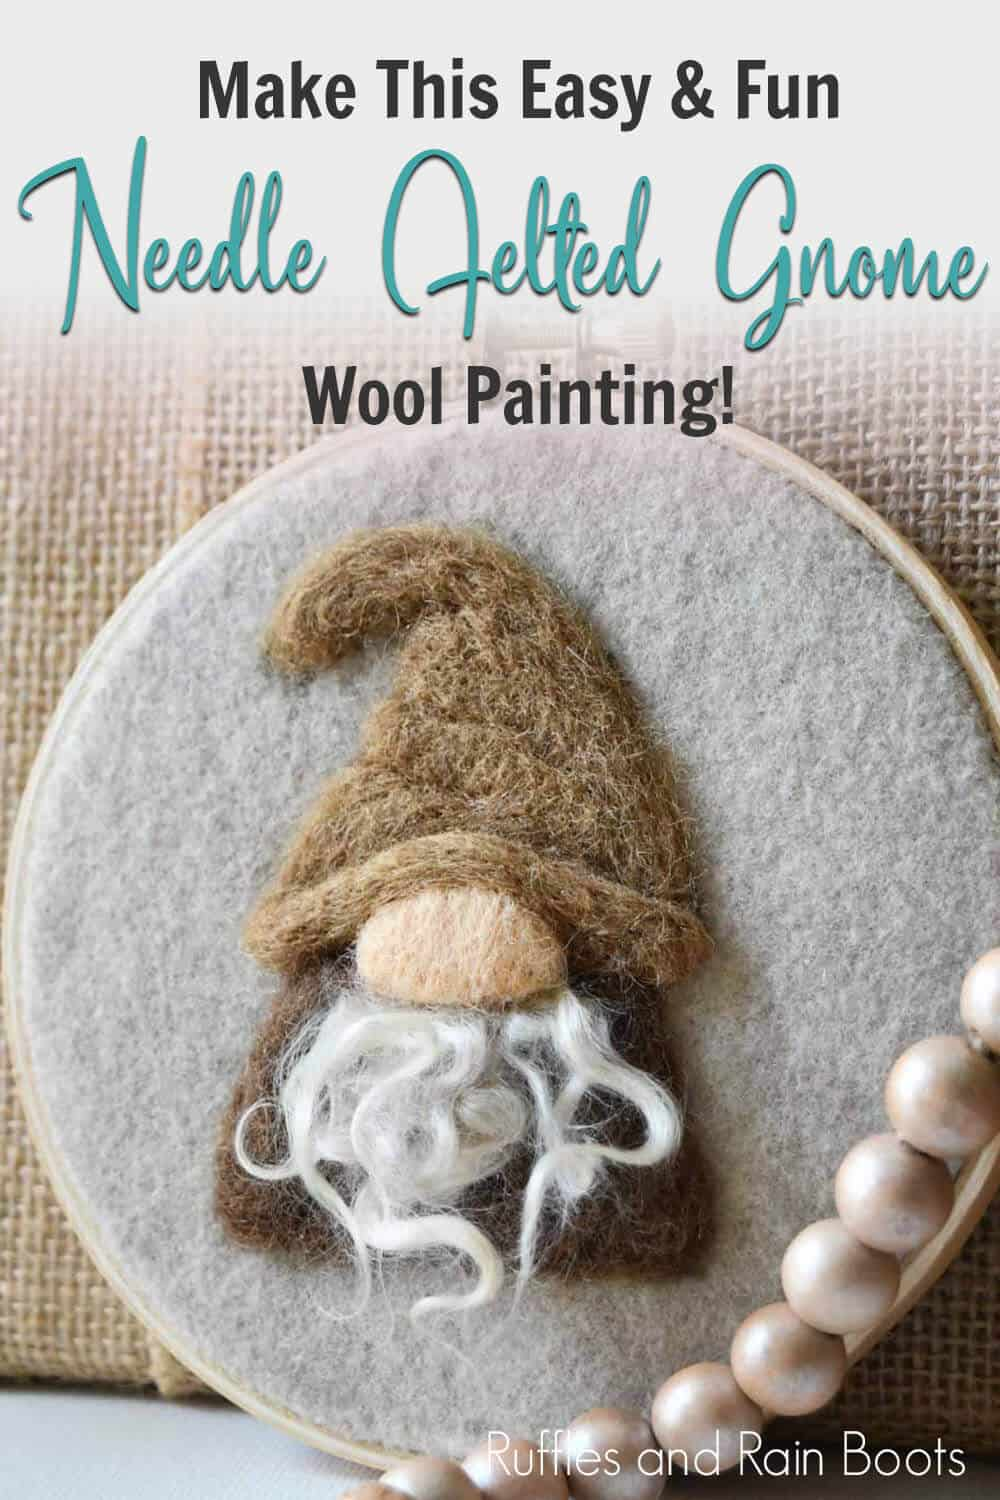 needle felted gnome wool painting canvas with text which reads make this easy and fun needle felted gnome wool painting